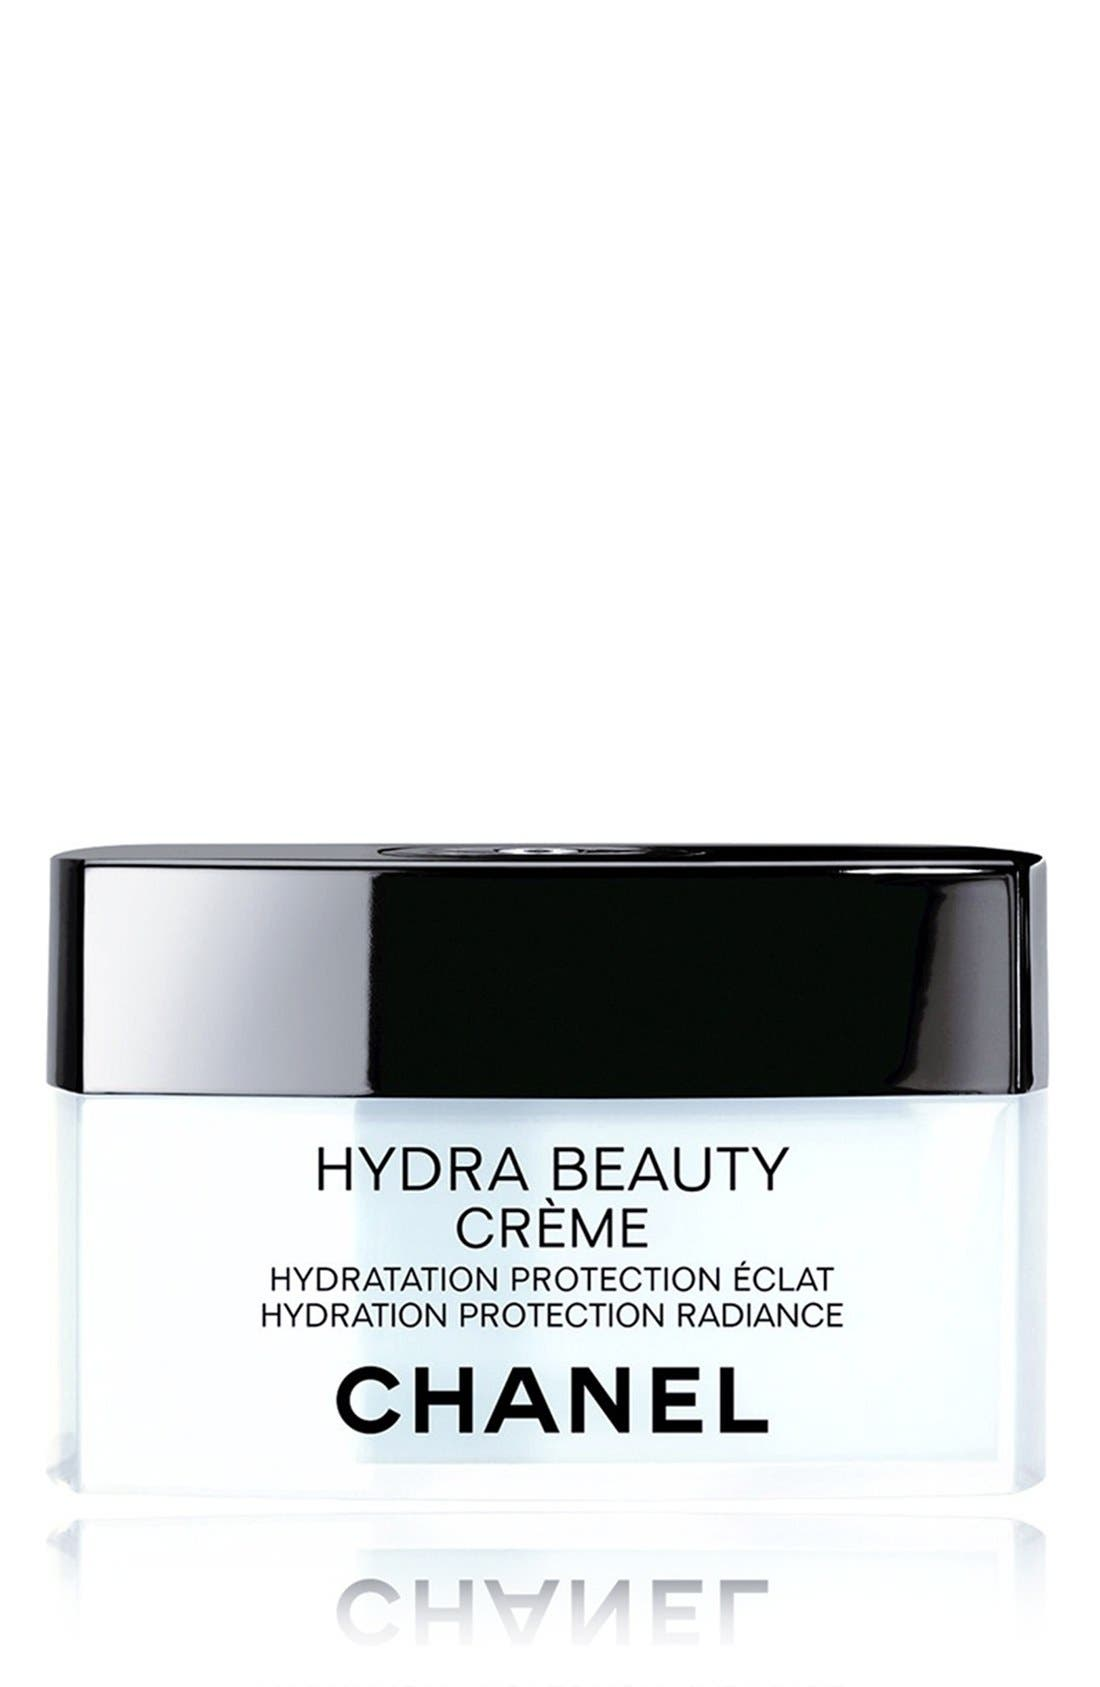 CHANEL HYDRA BEAUTY CRÈME 